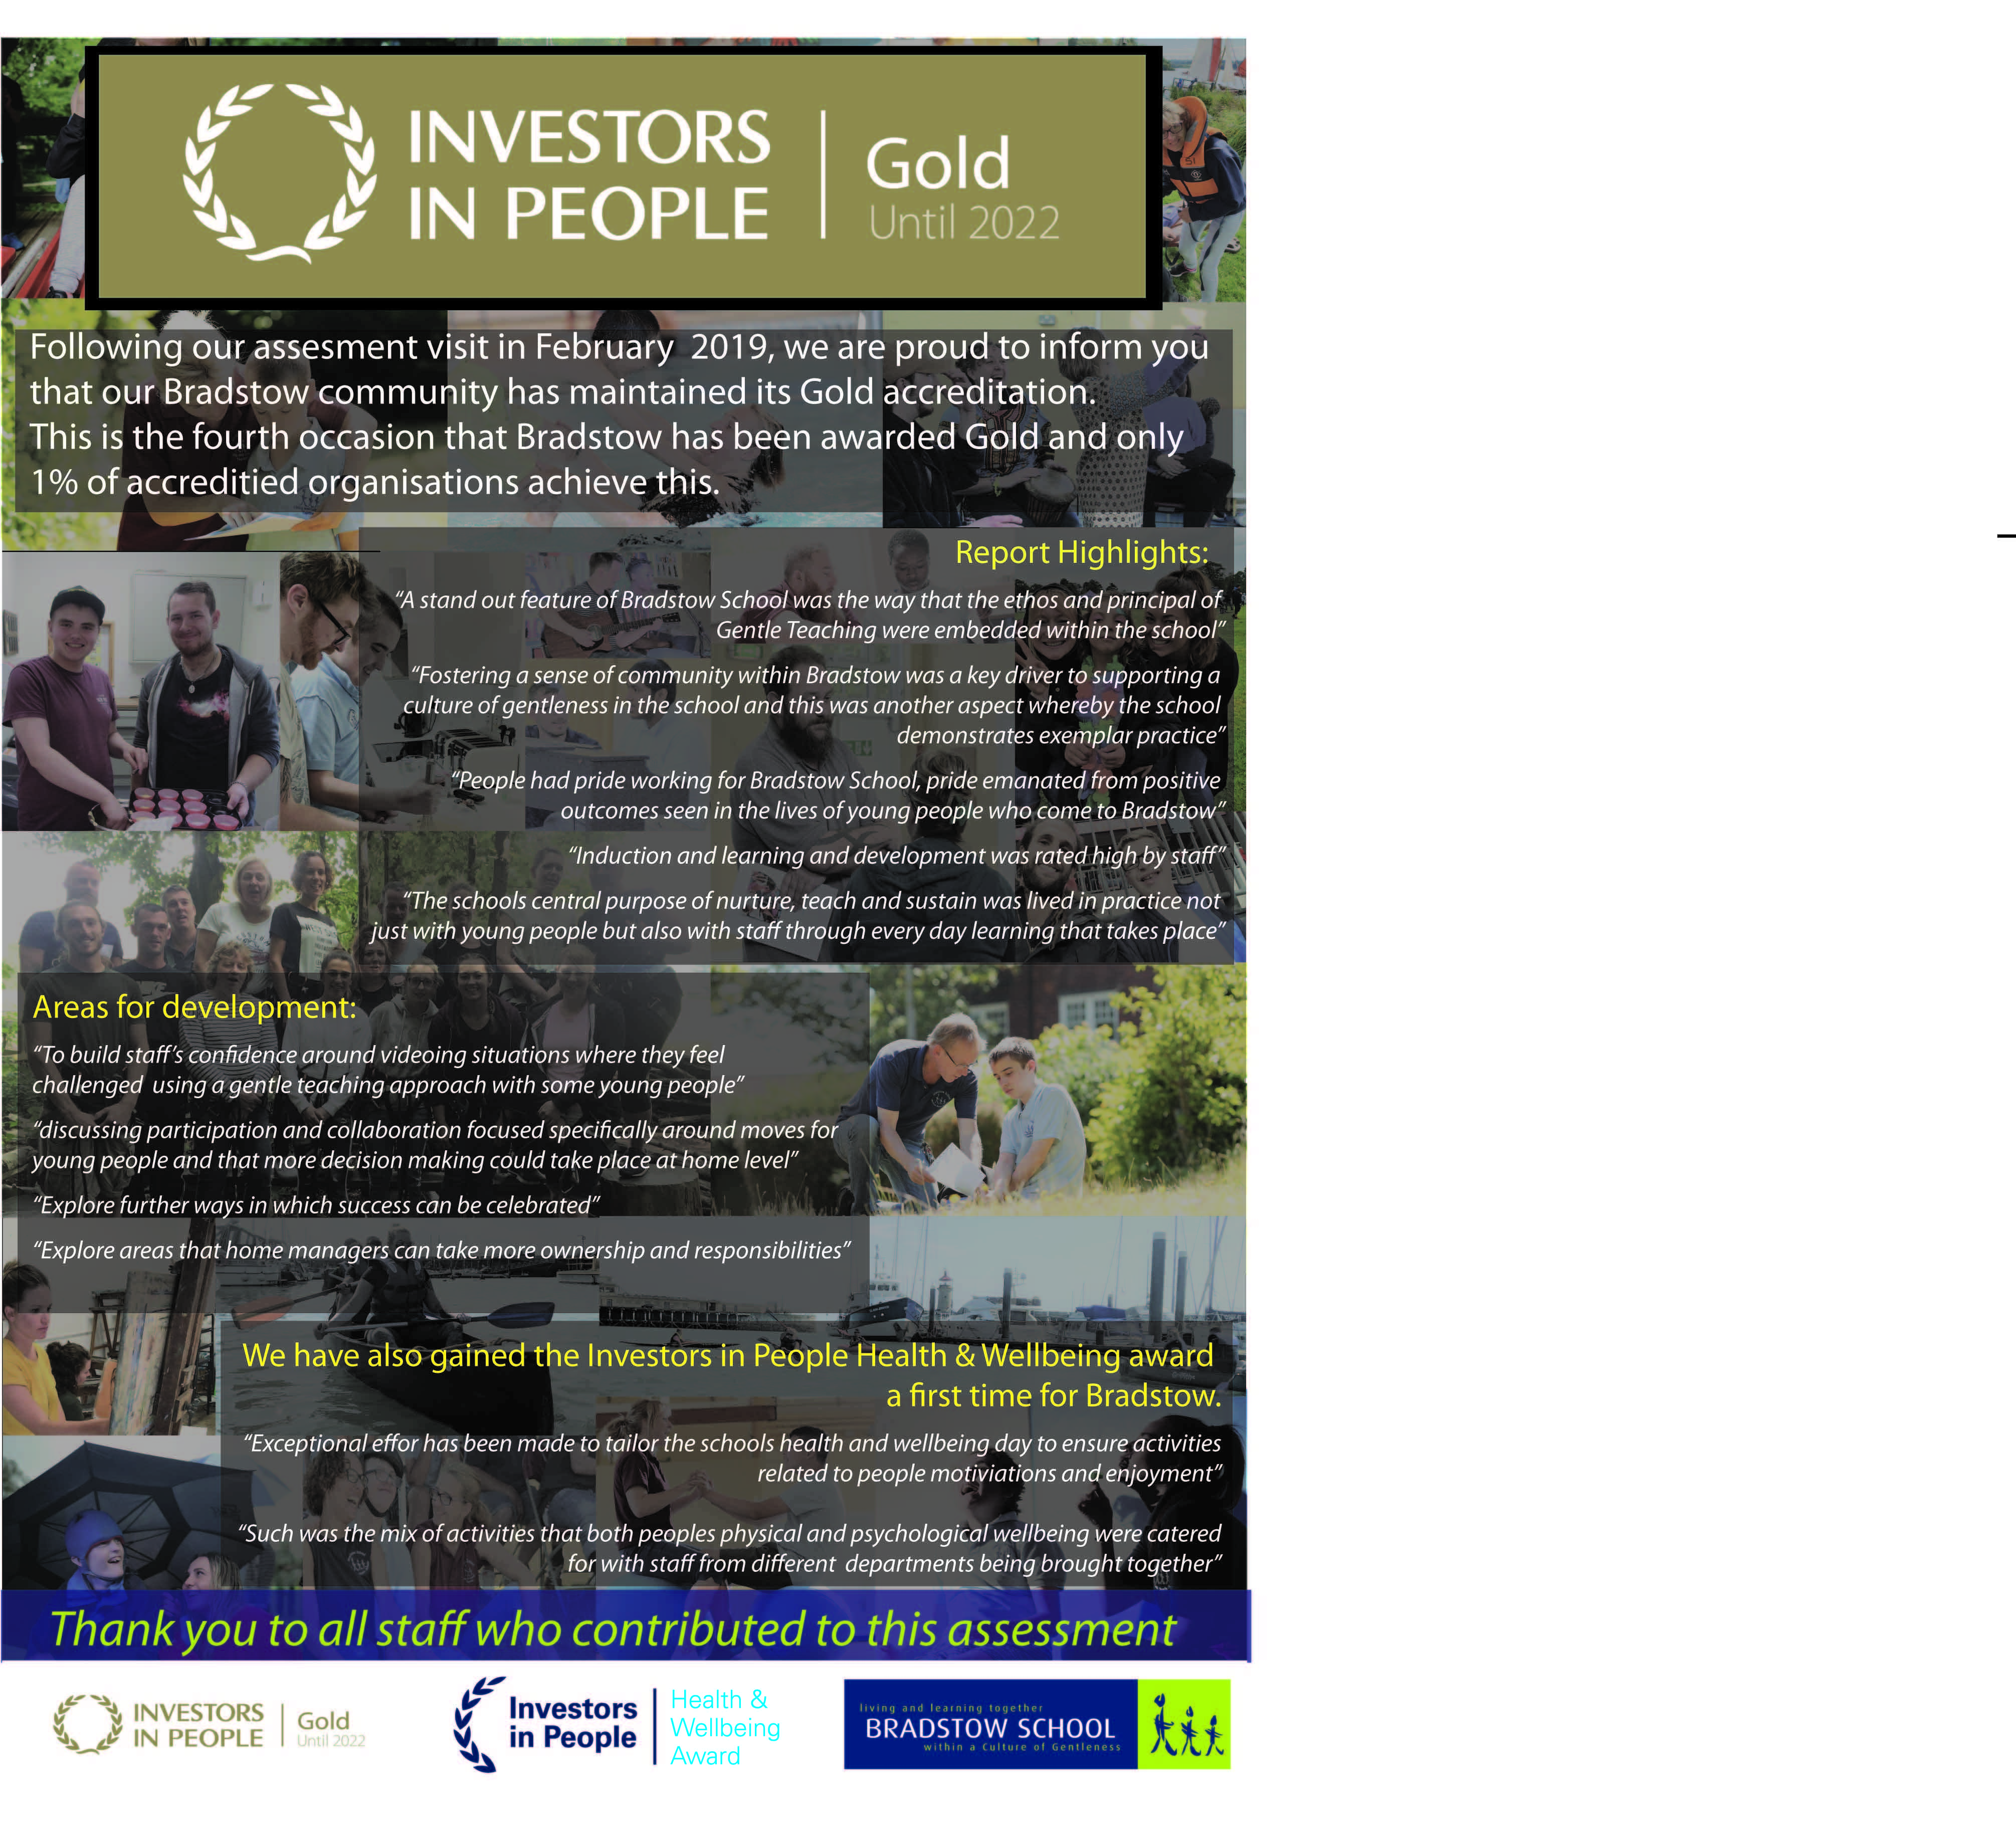 Investors In People Gold Standard awarded